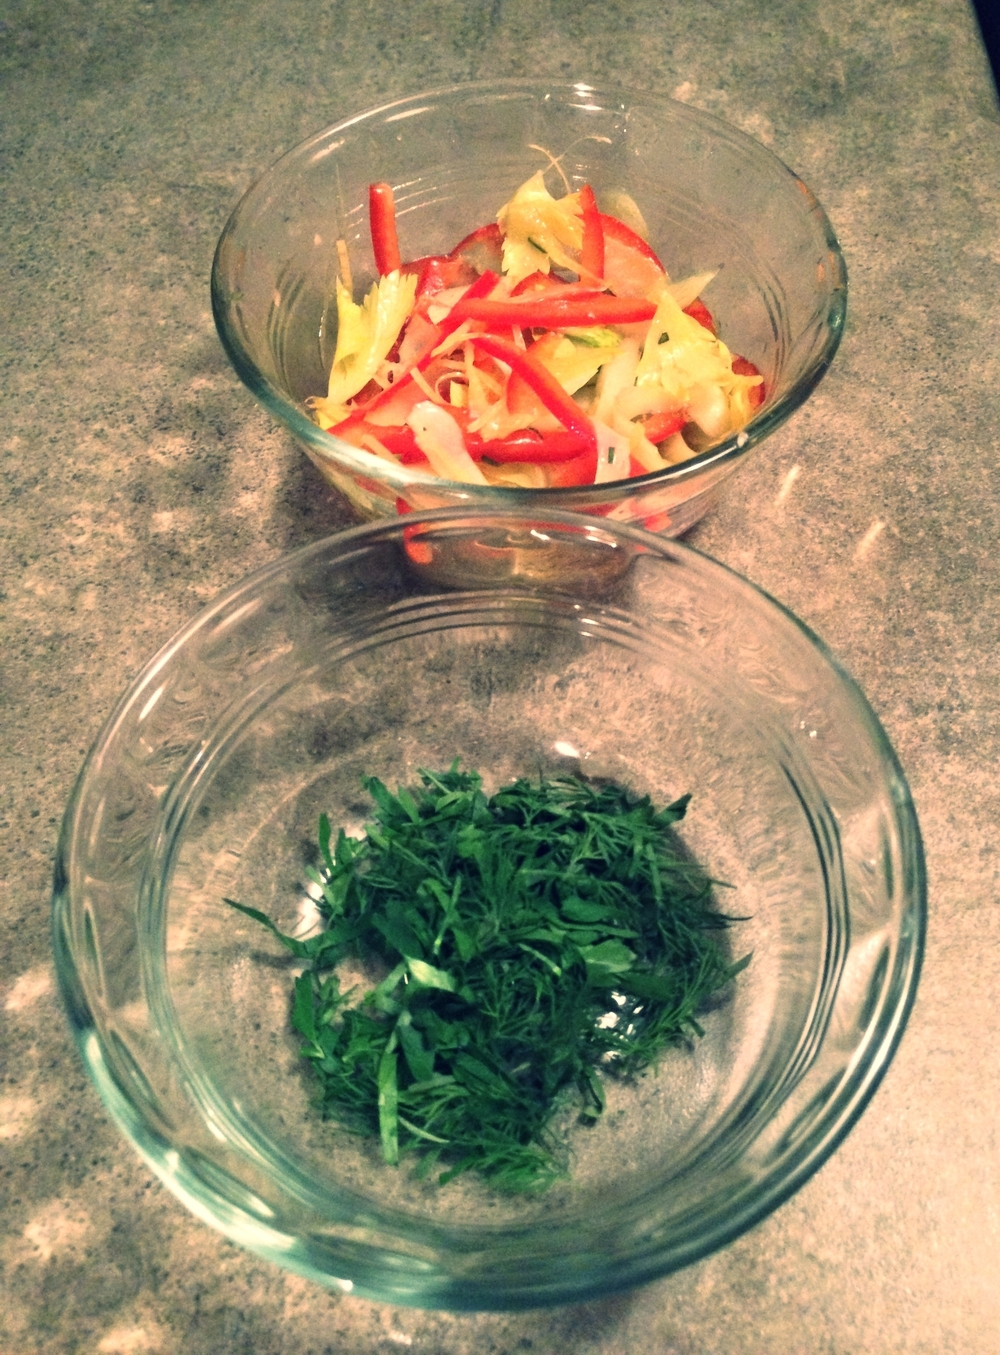 Herb Crust (Parsley, Tarragon, Dill) and Celery, Red Pepper and Lemon Salad